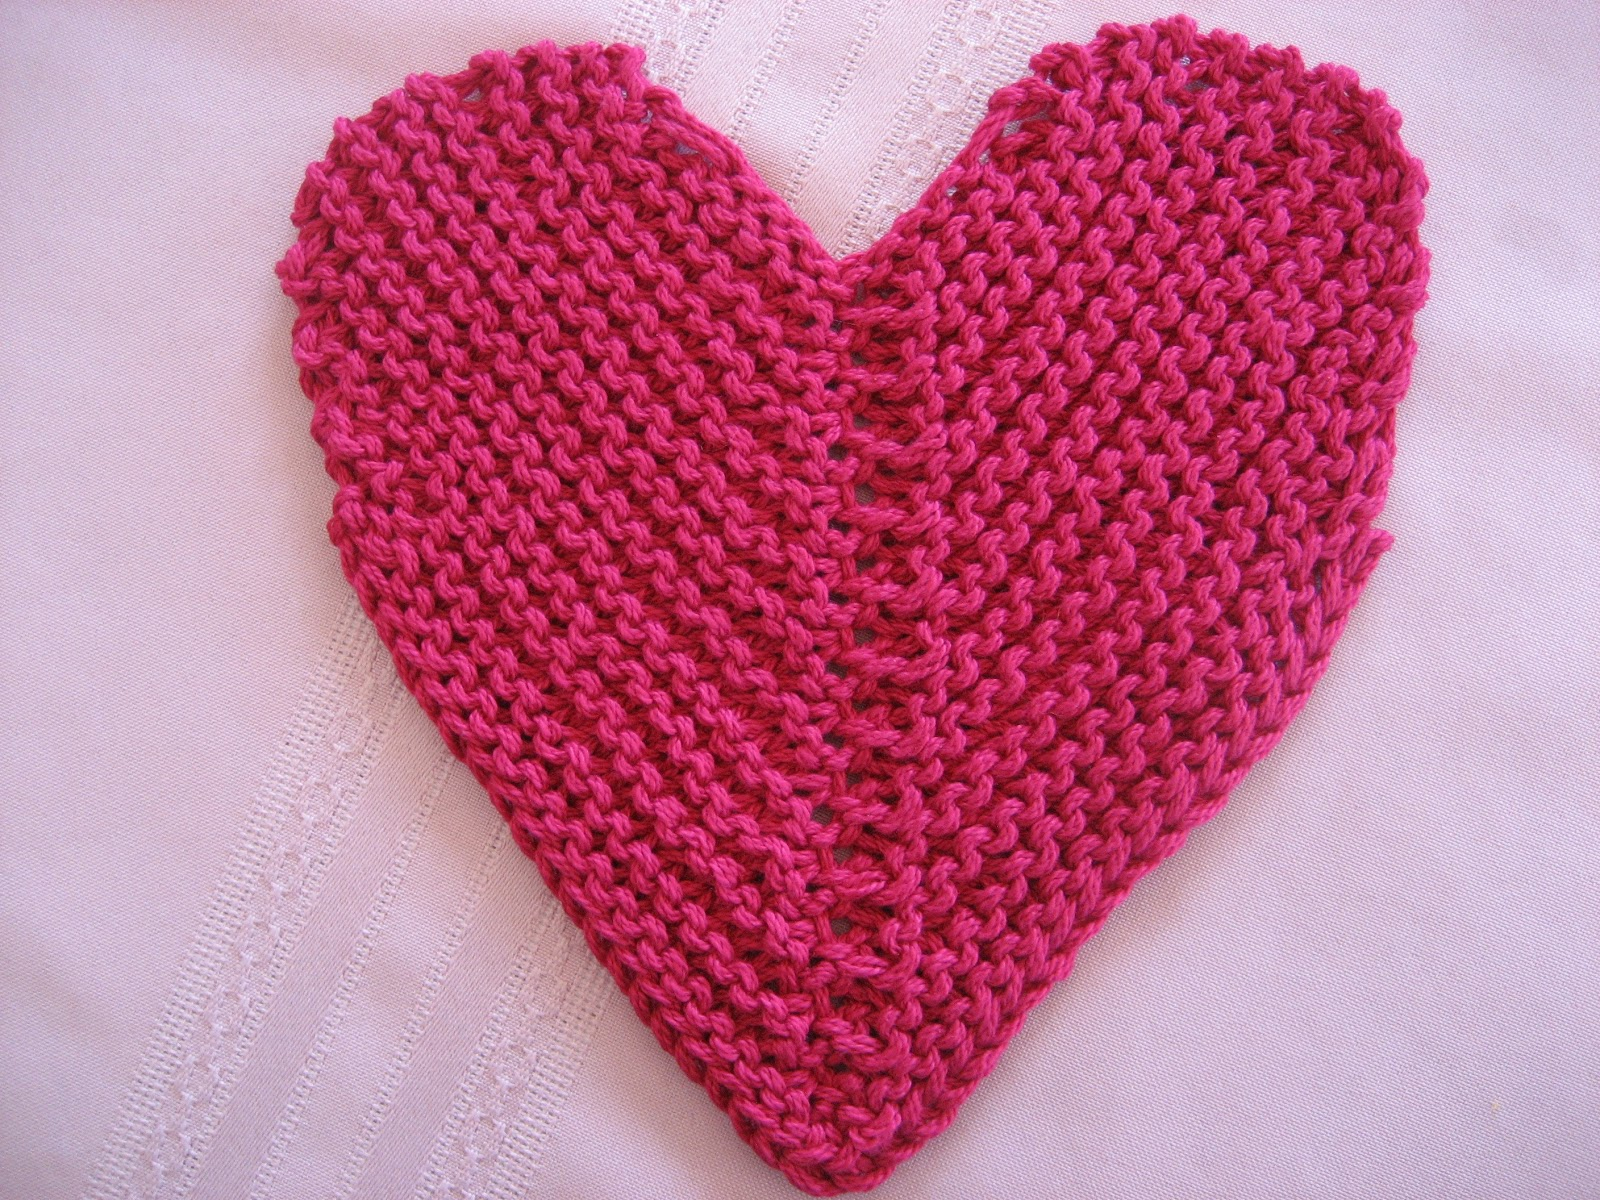 Heart Shaped Dishcloth Knitting Pattern Red Hat Knitter What Am I Doing